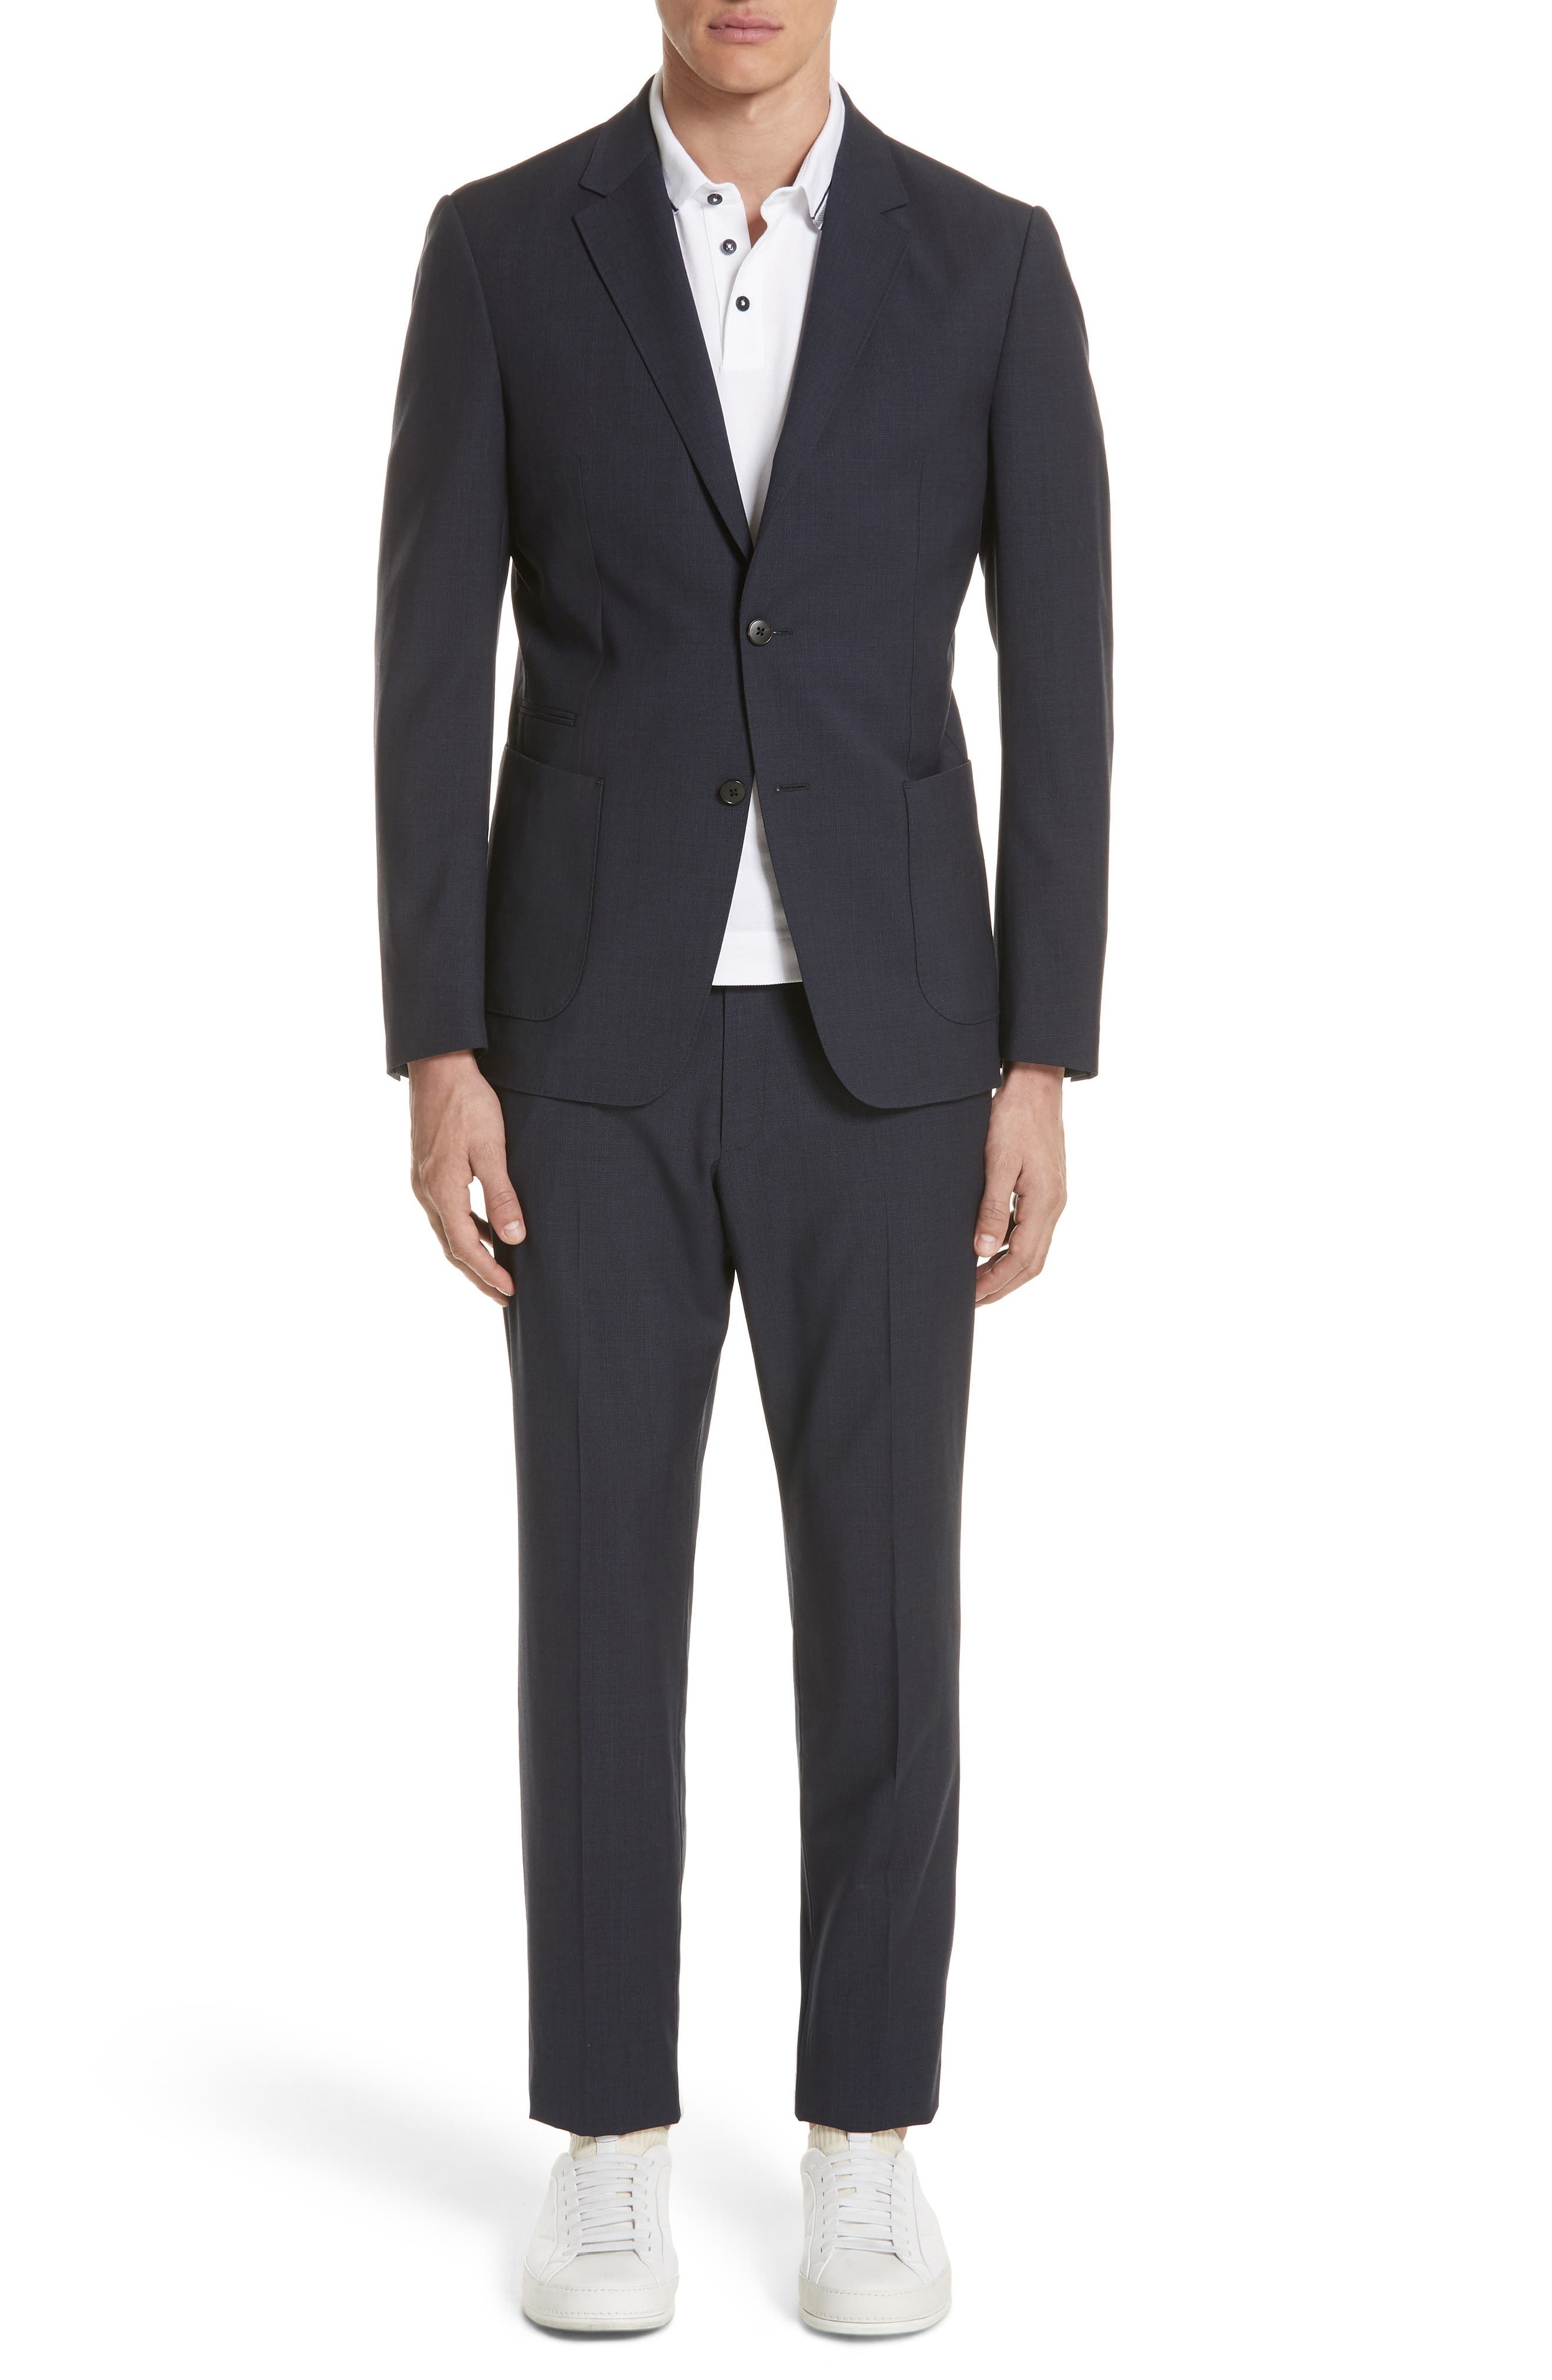 Alternate Image 1 Selected - Z Zegna TECHMERINO™ Wash & Go Trim Fit Solid Wool Suit